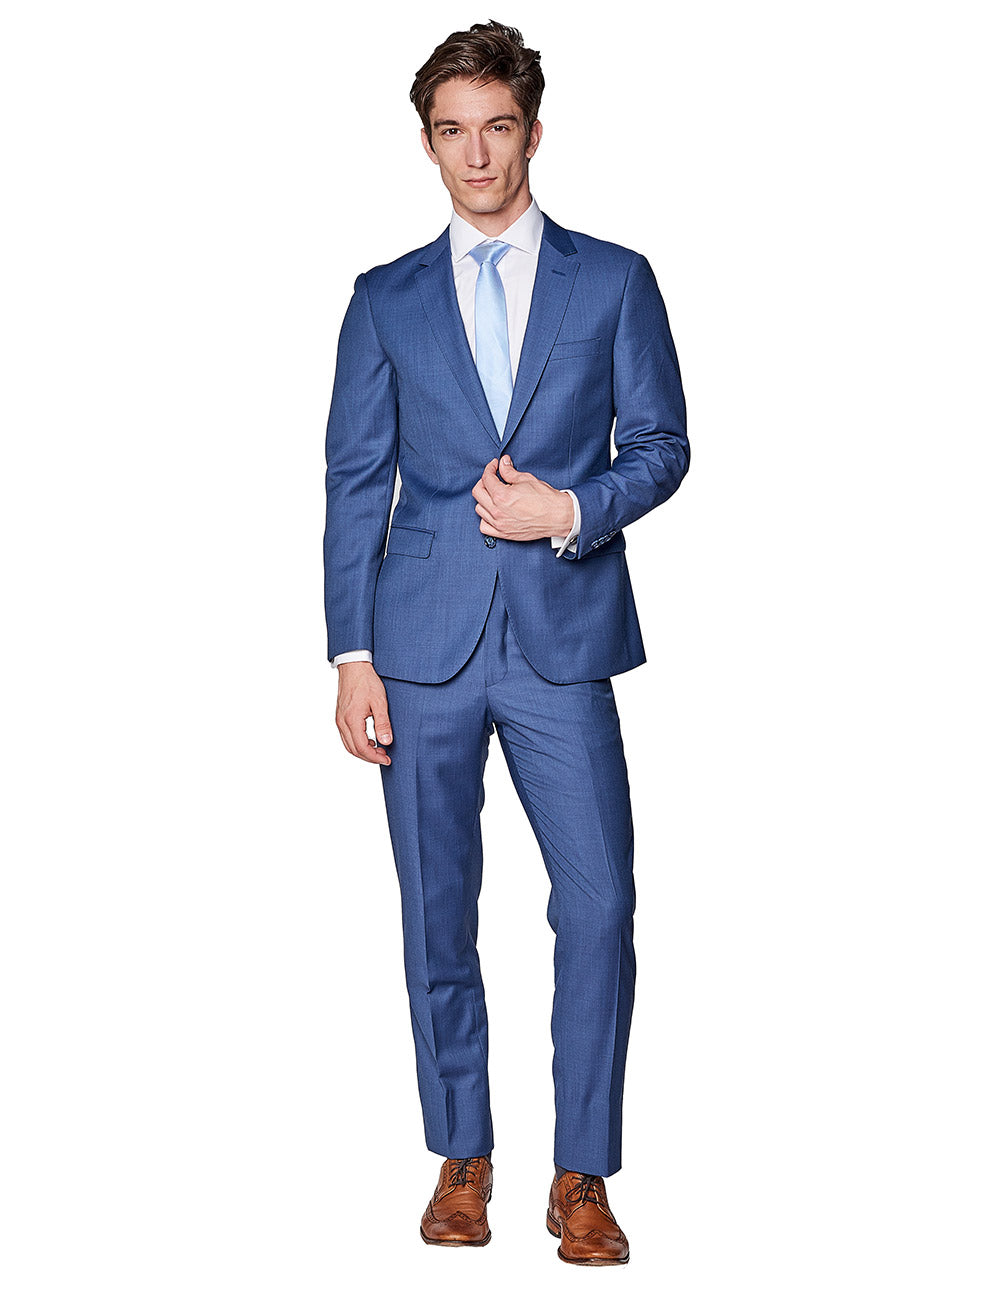 100% Wool Wedding Suits